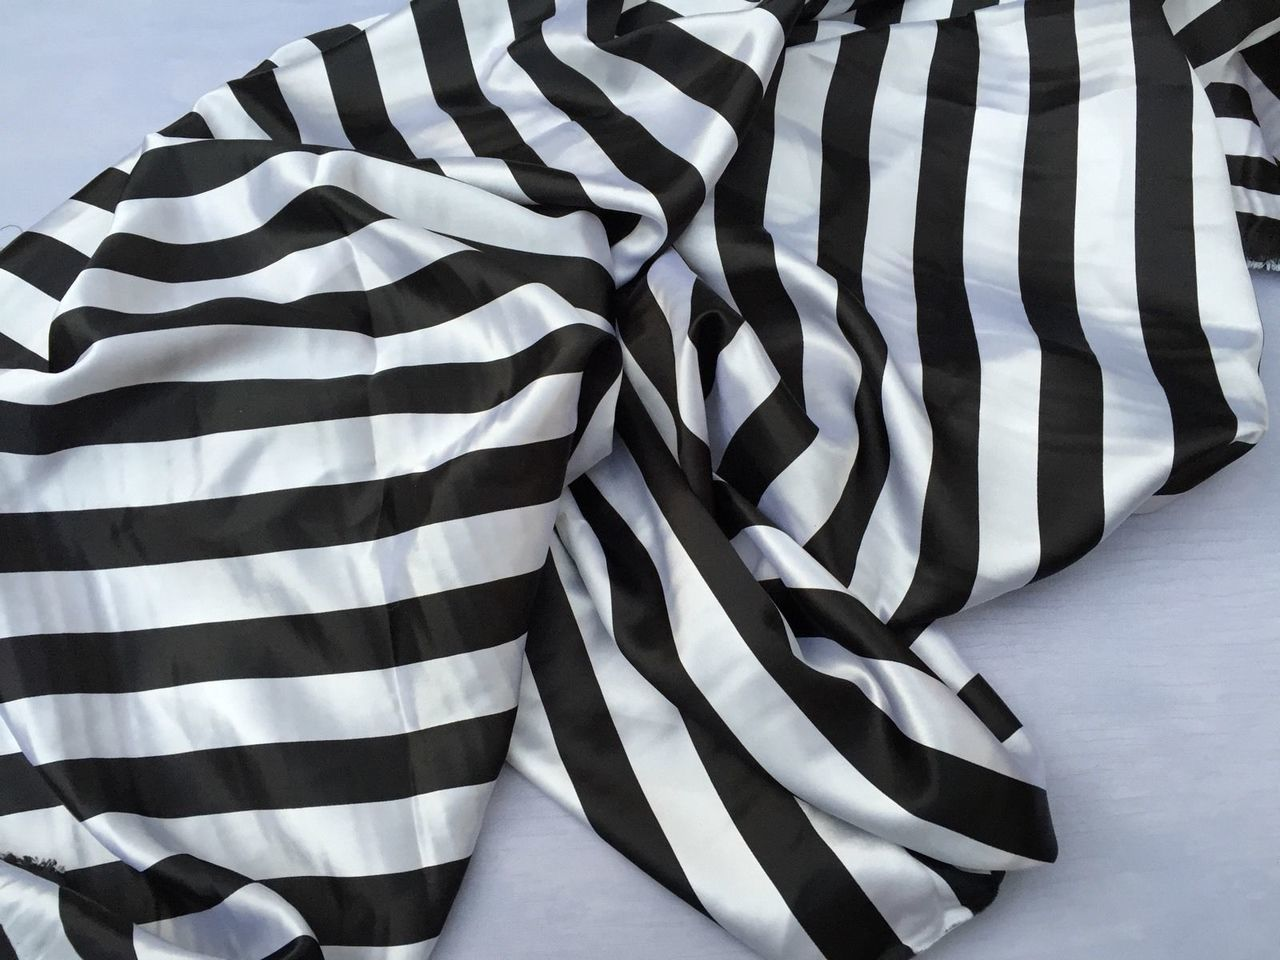 White/black 1inch Stripe Soft/silky Charmeuse Satin Fabric. (20 Yards) - KINGDOM OF FABRICS